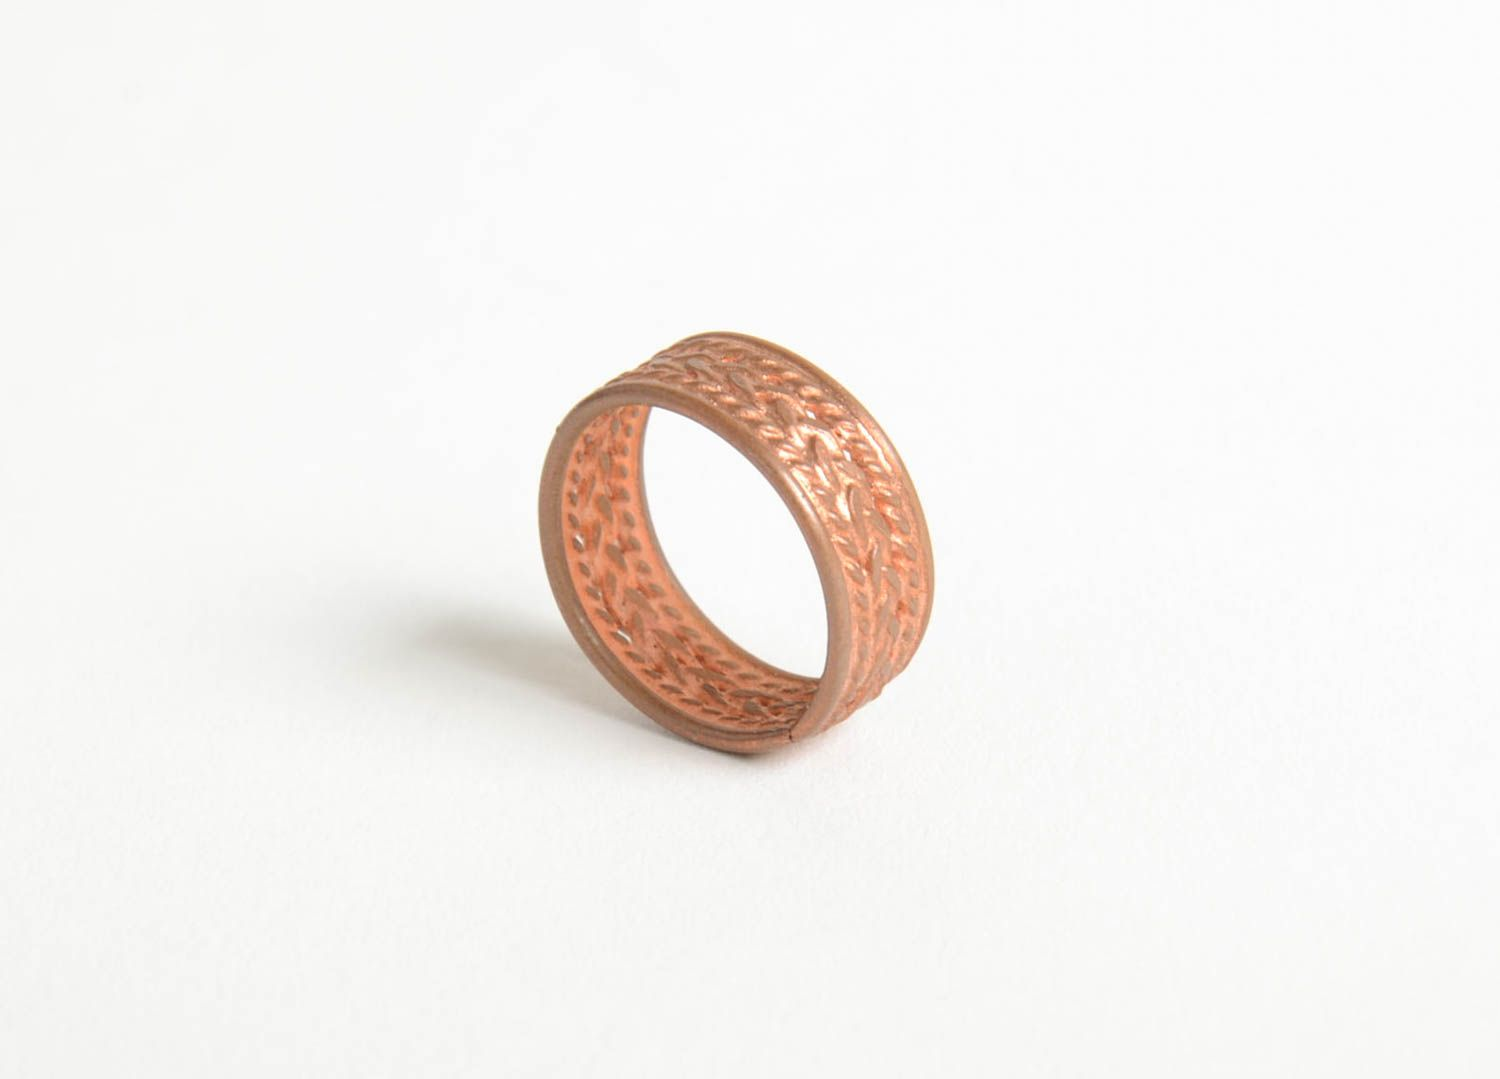 Stylish handmade copper ring metal ring design accessories for girls gift  ideas